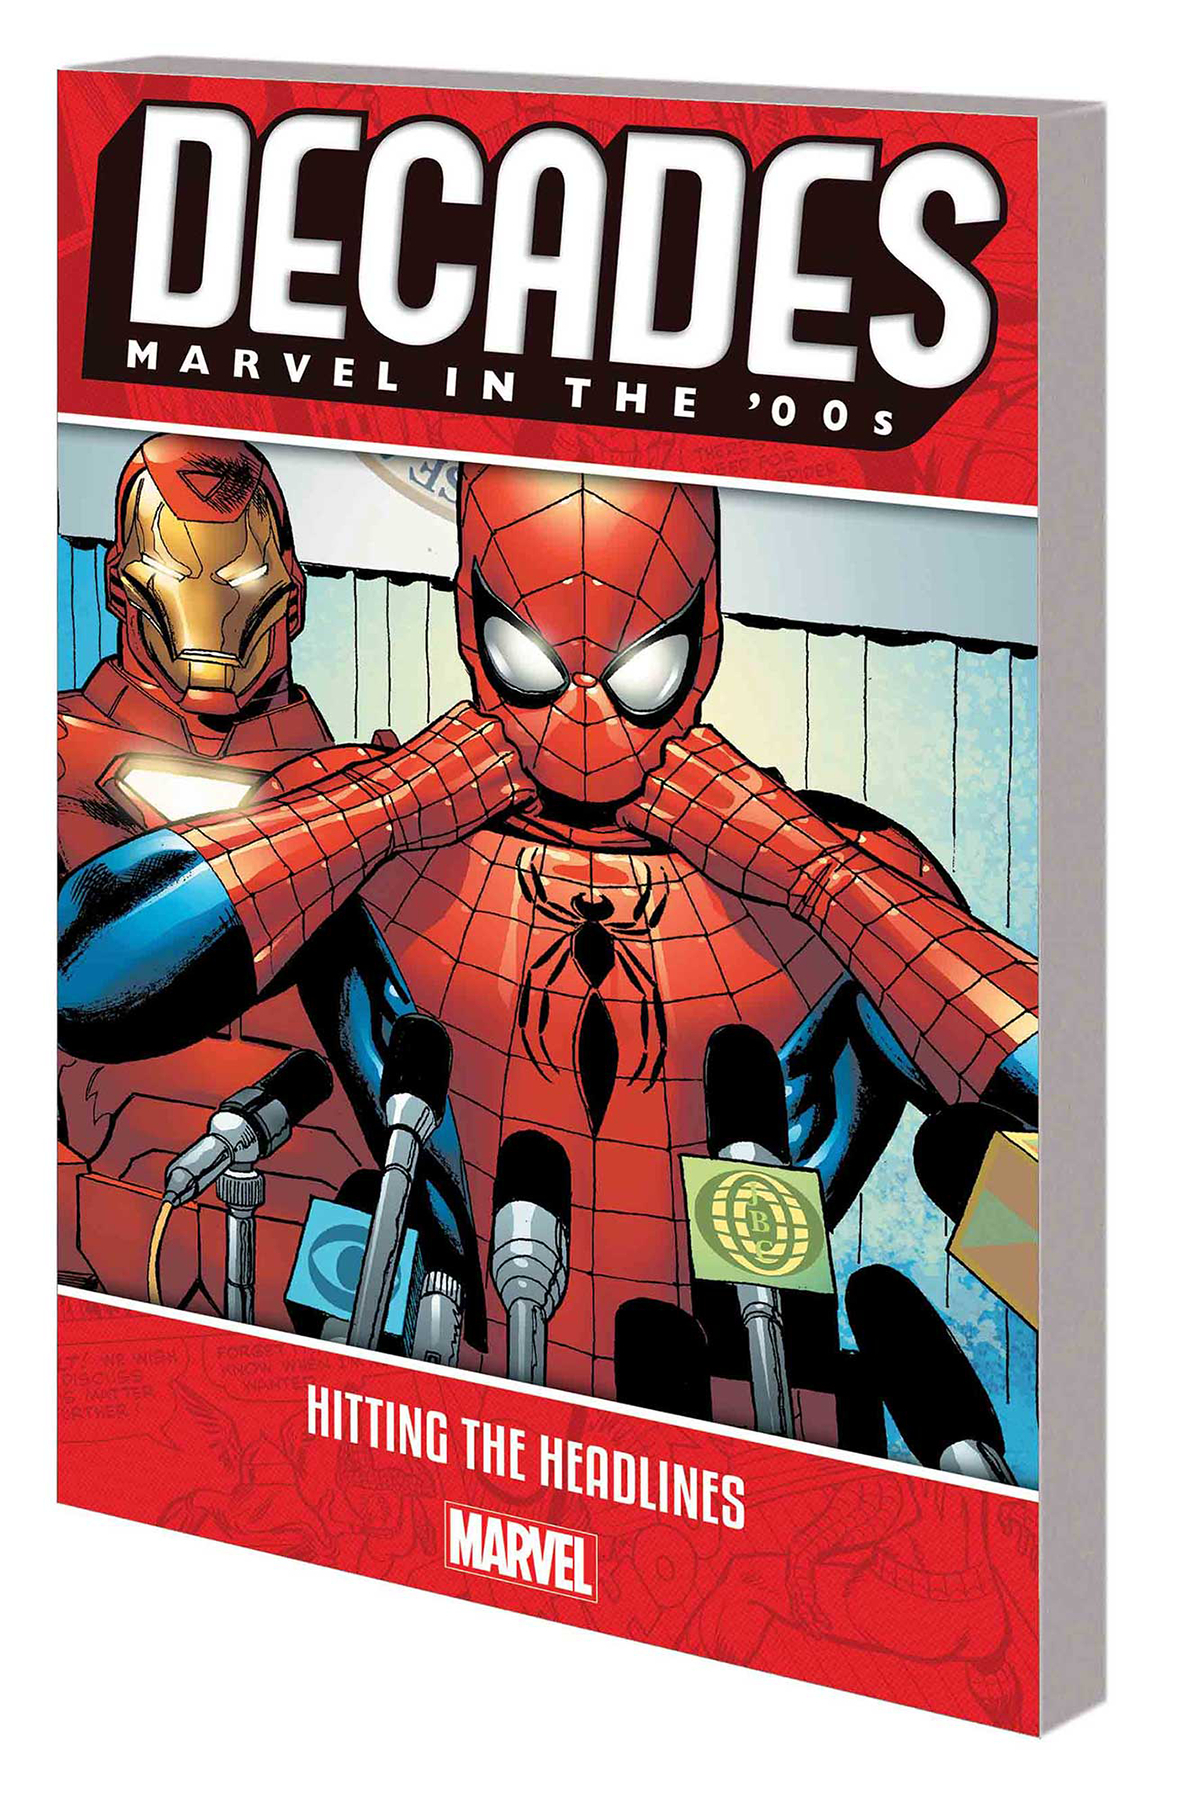 Decades: Marvel in the 00's: Hitting Headlines TP